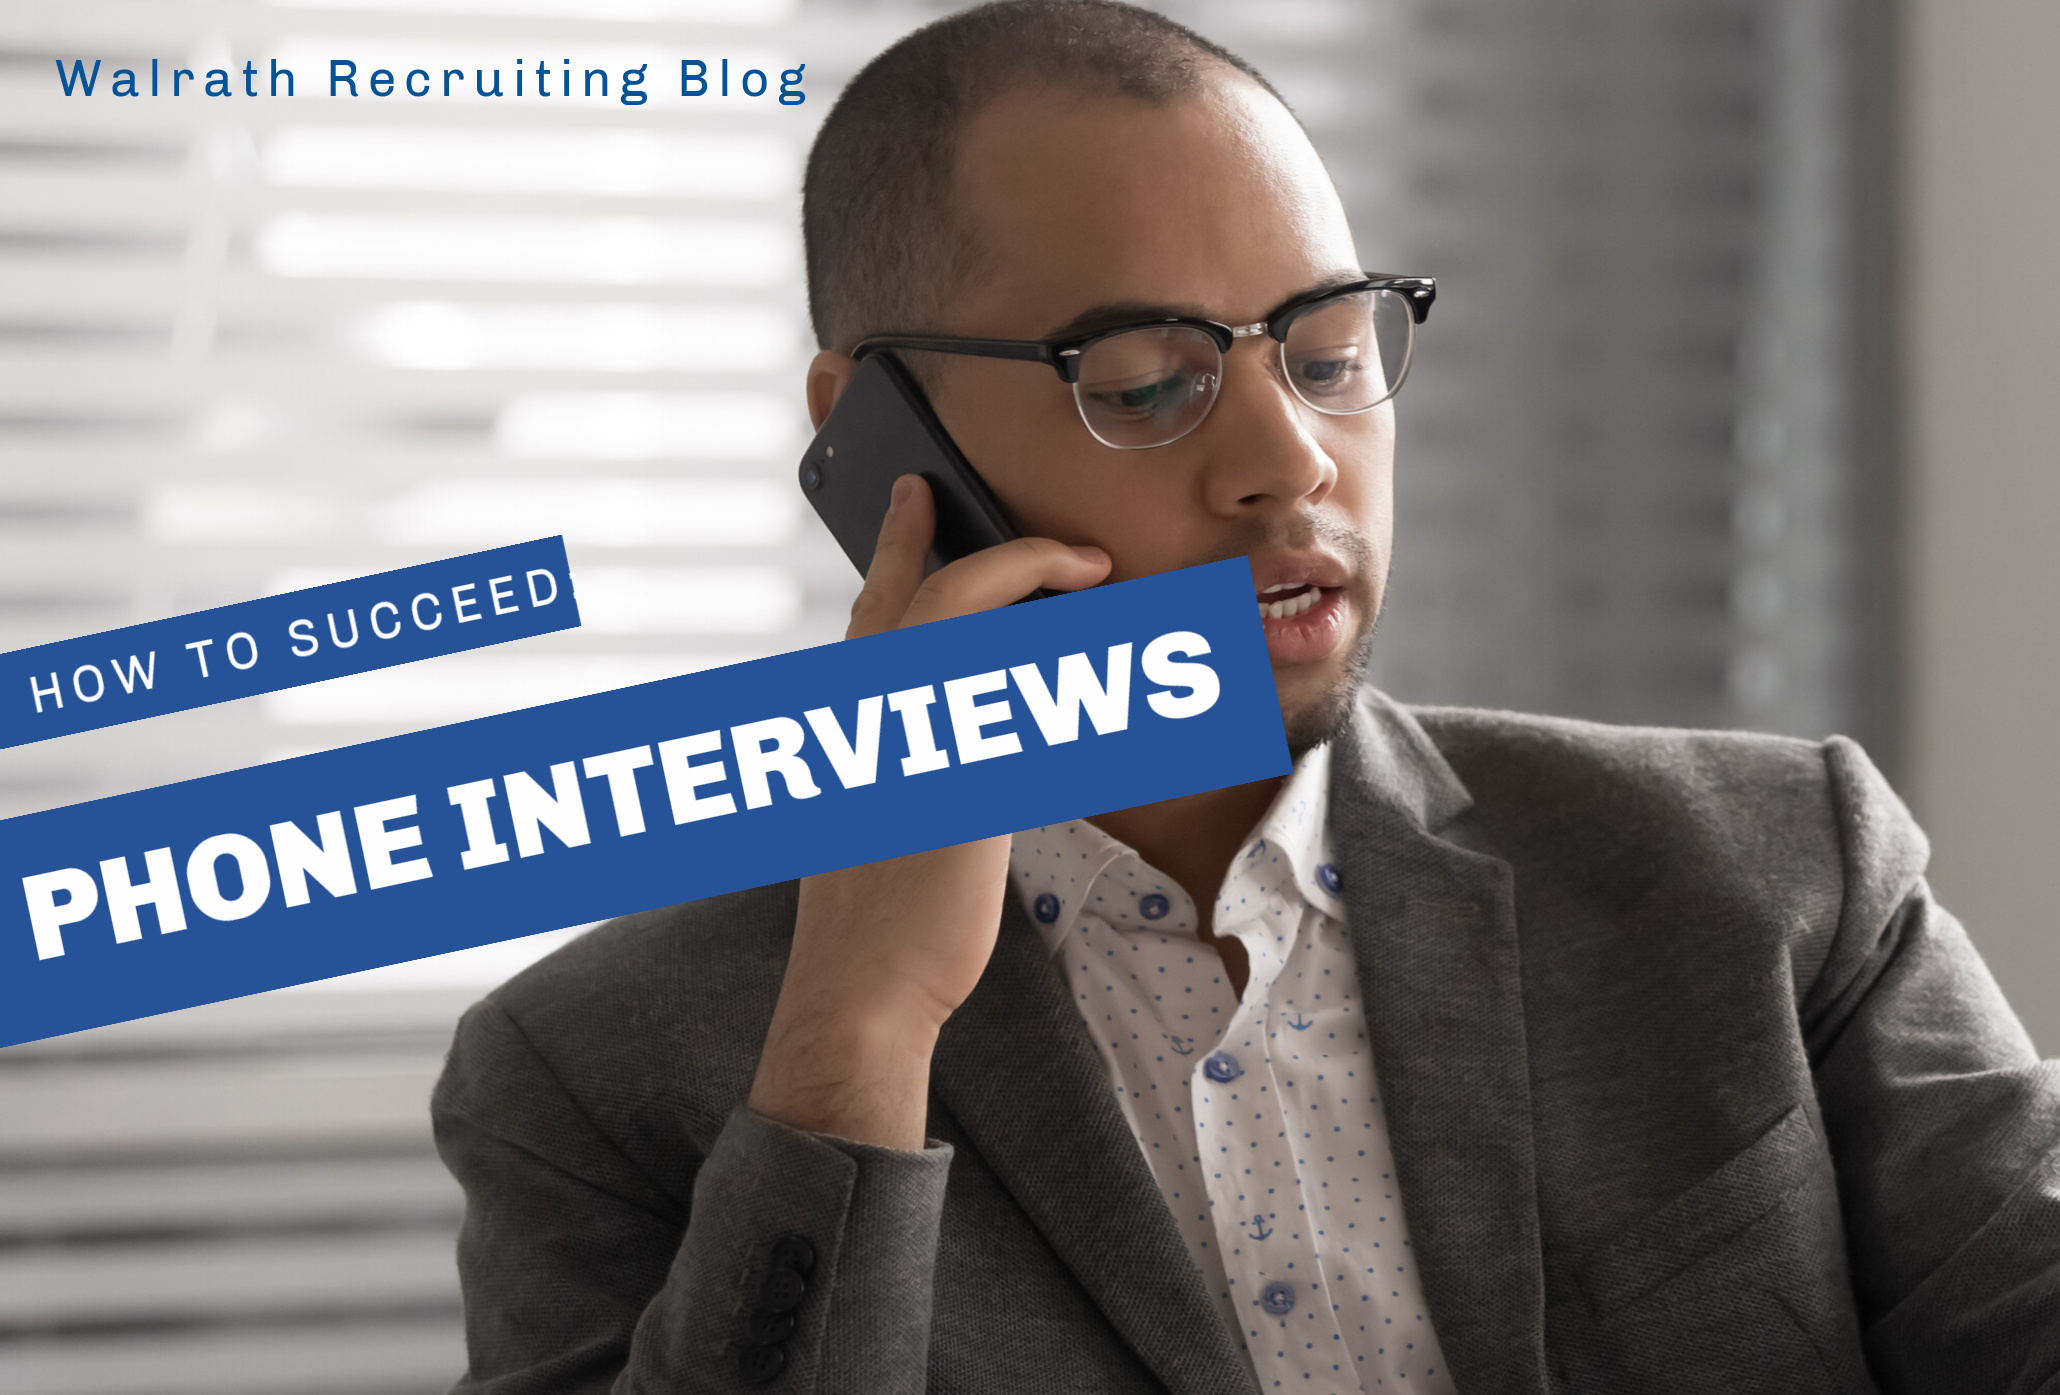 Phone Interviews are just as important as in-person ones. Find out how to nail your next phone interview!